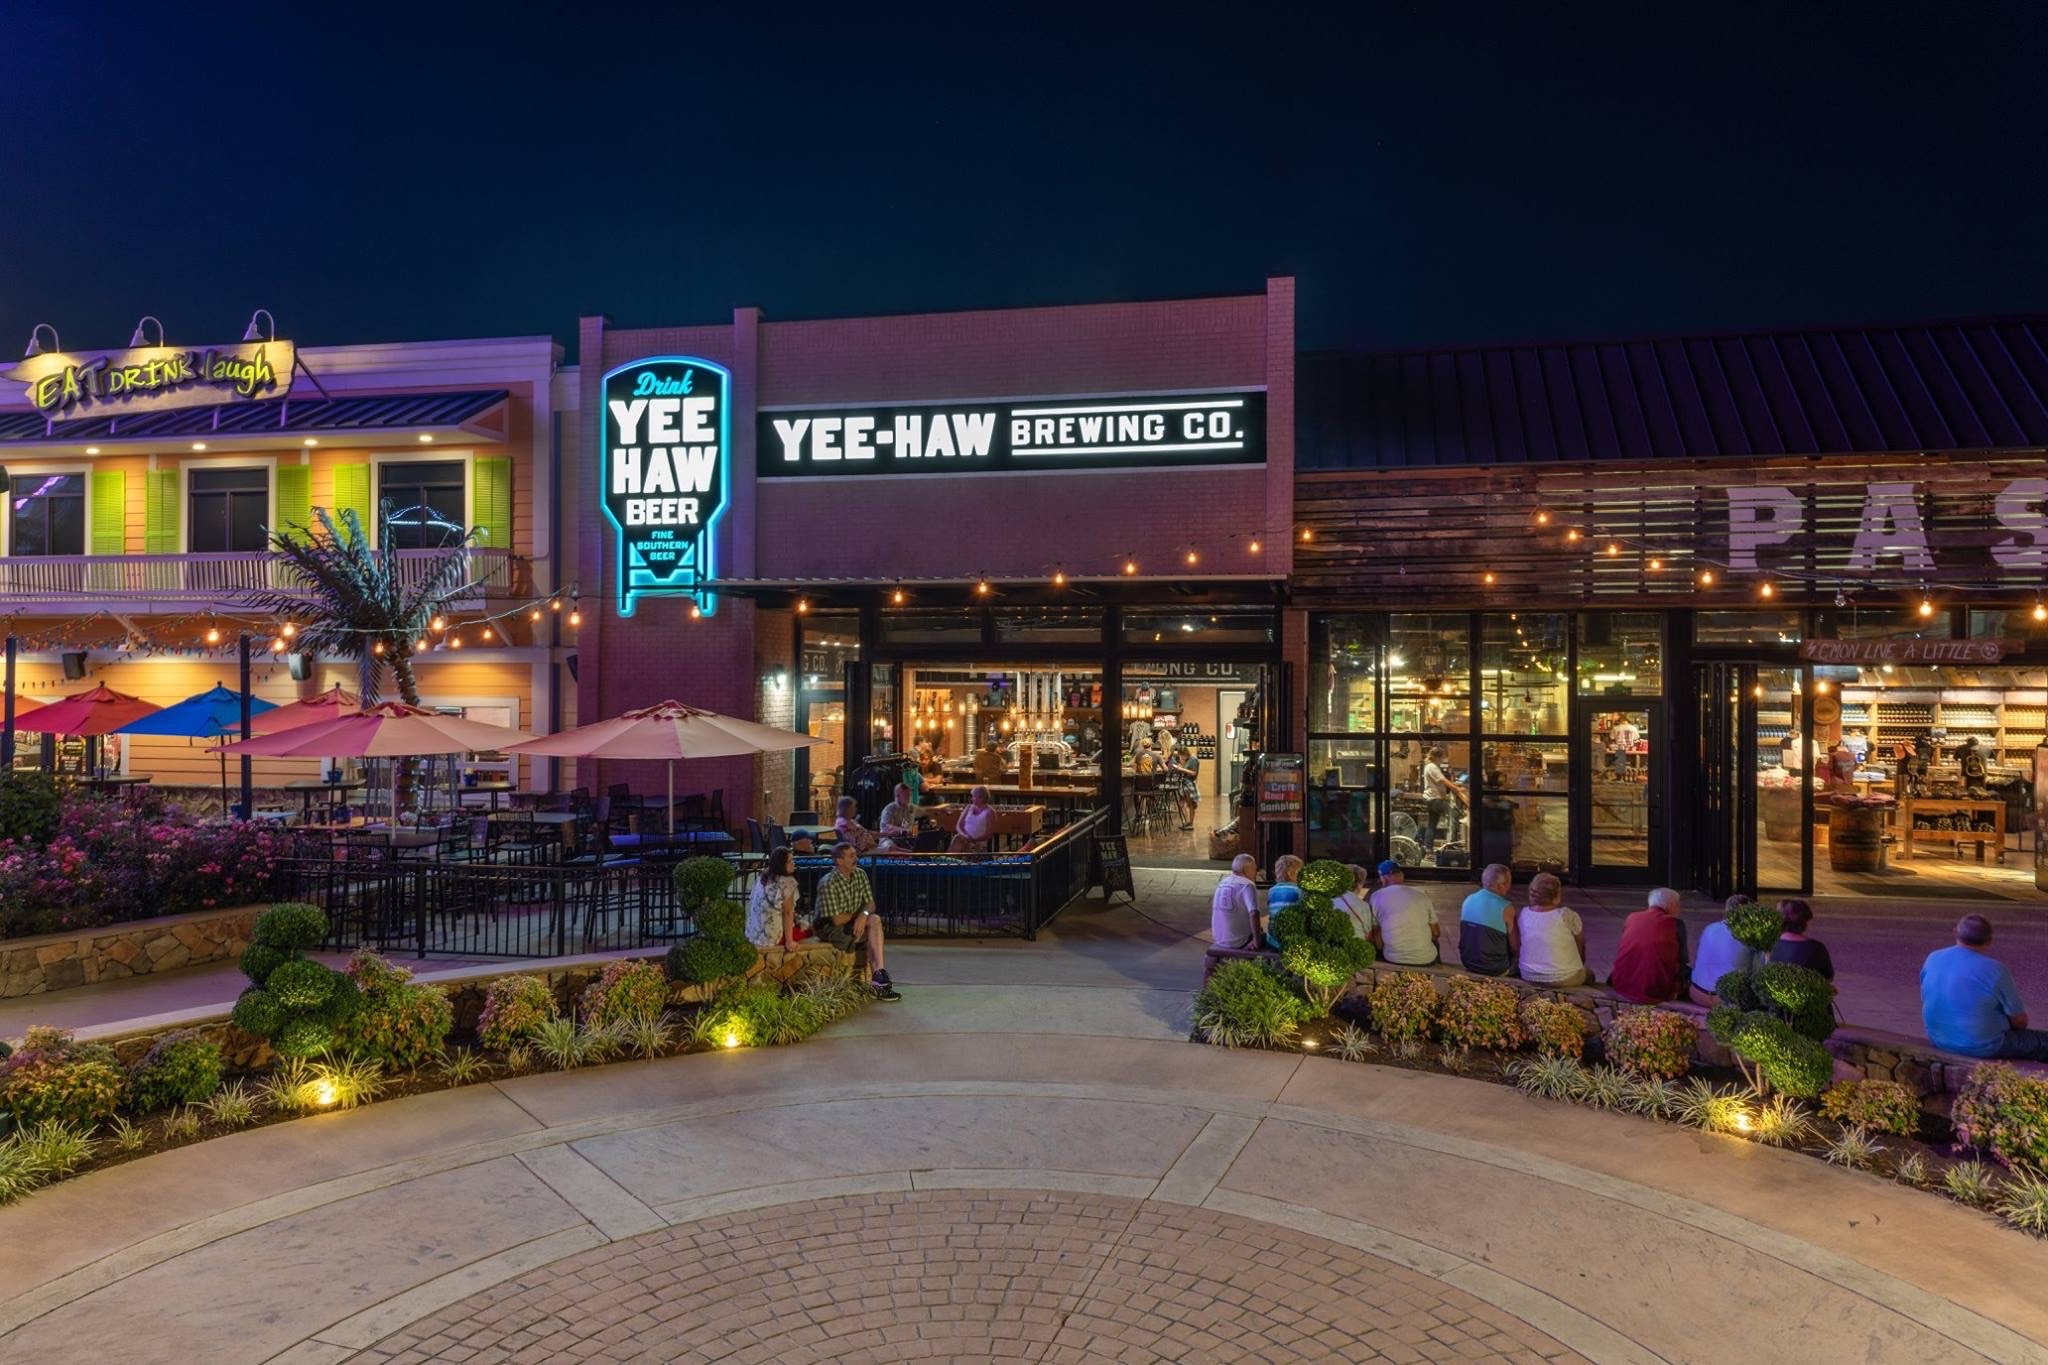 Yee-Haw Brewing Co, Pigeon Forge, TN